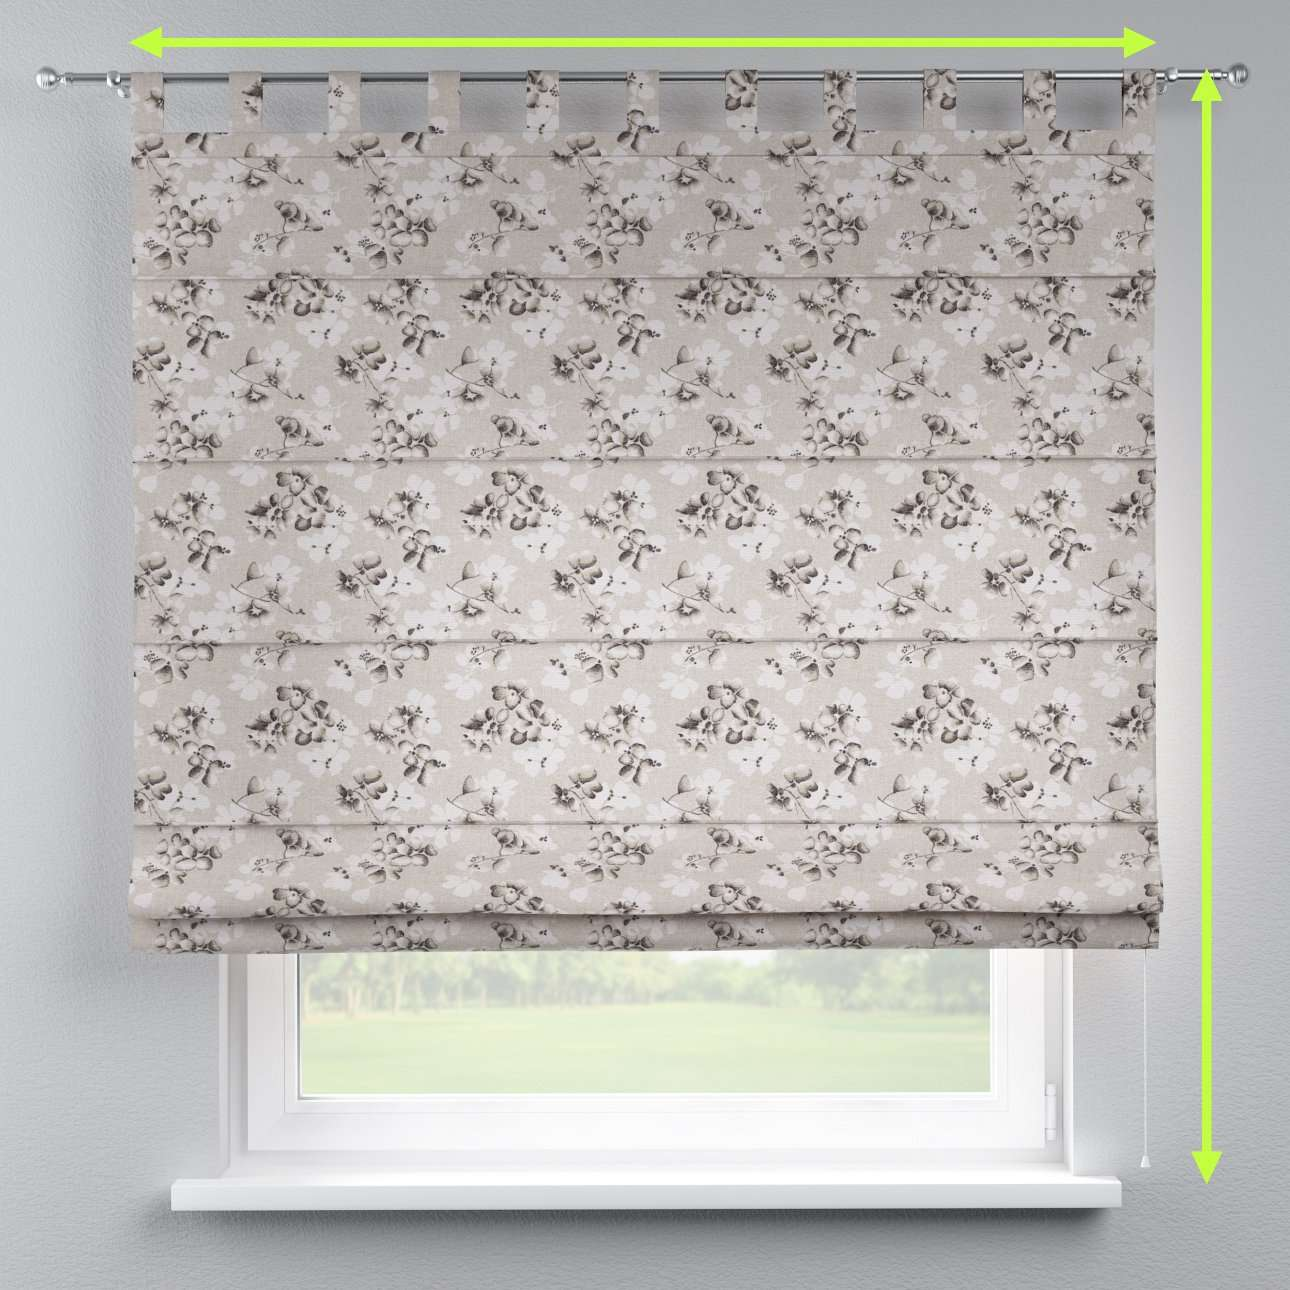 Verona tab top roman blind in collection Rustica, fabric: 138-14